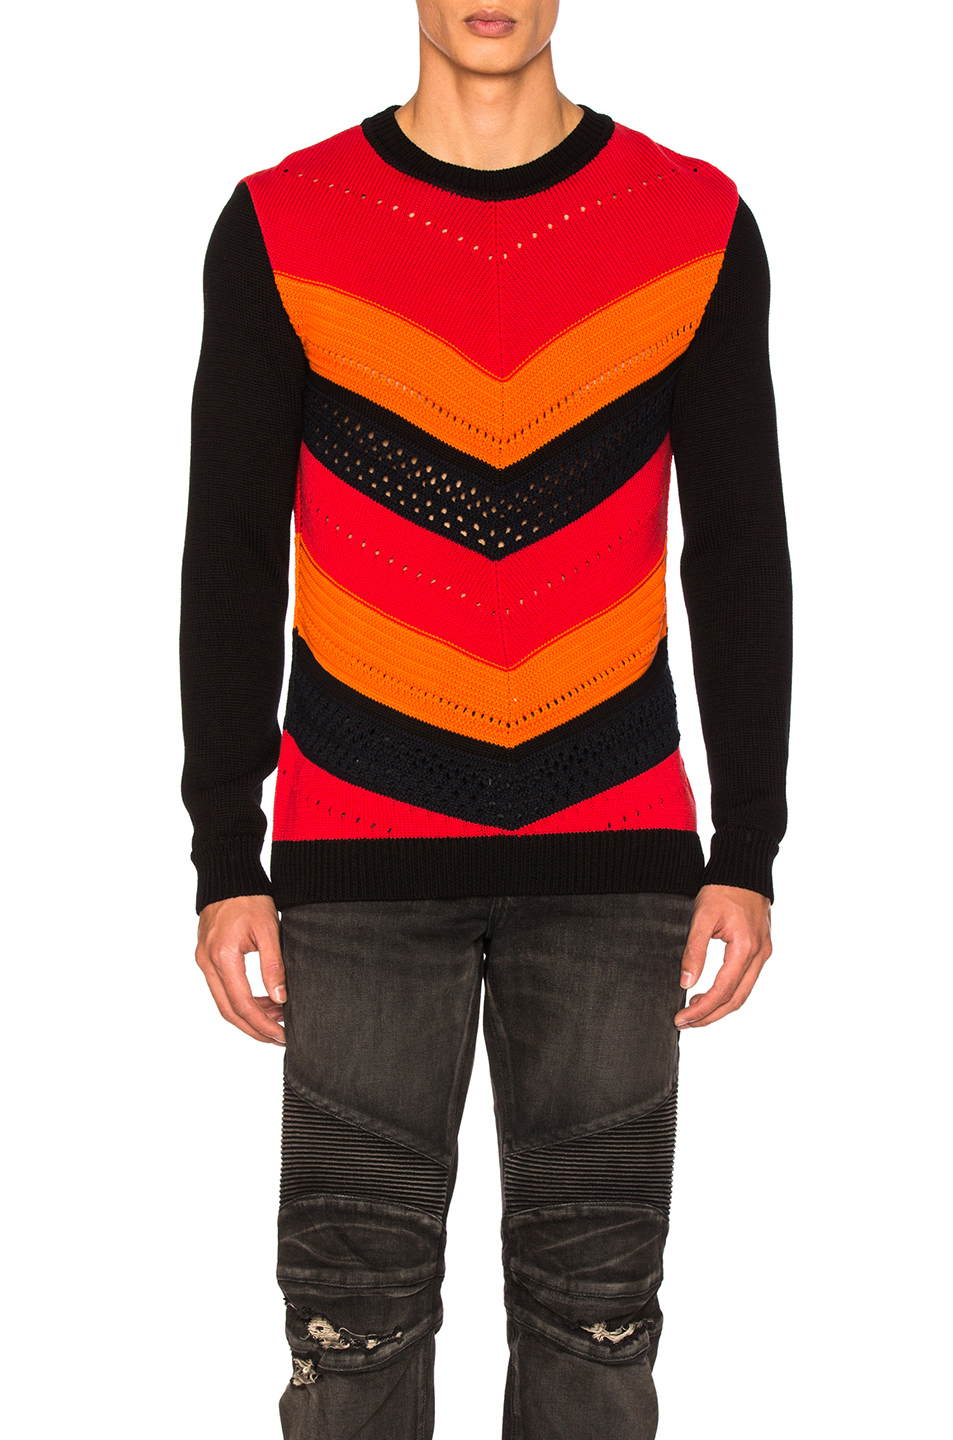 BALMAIN Chevron Sweater in Red,Black,Orange,Stripes